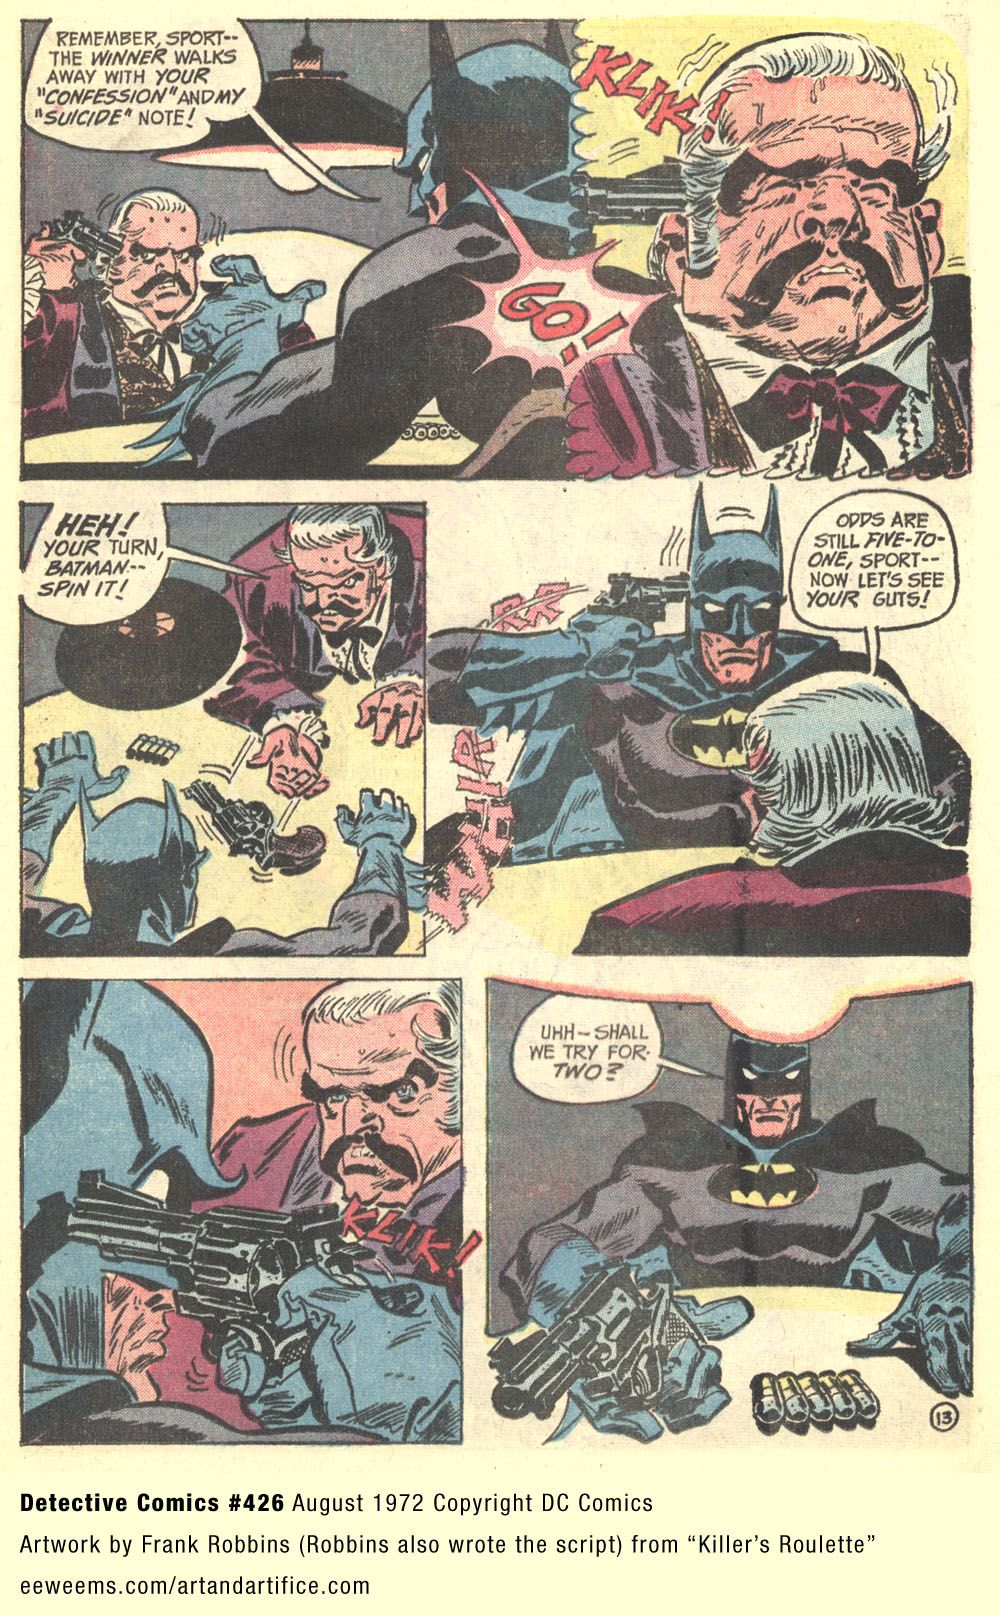 Frank Robbins artwork from Detective Comics 1972 splash page